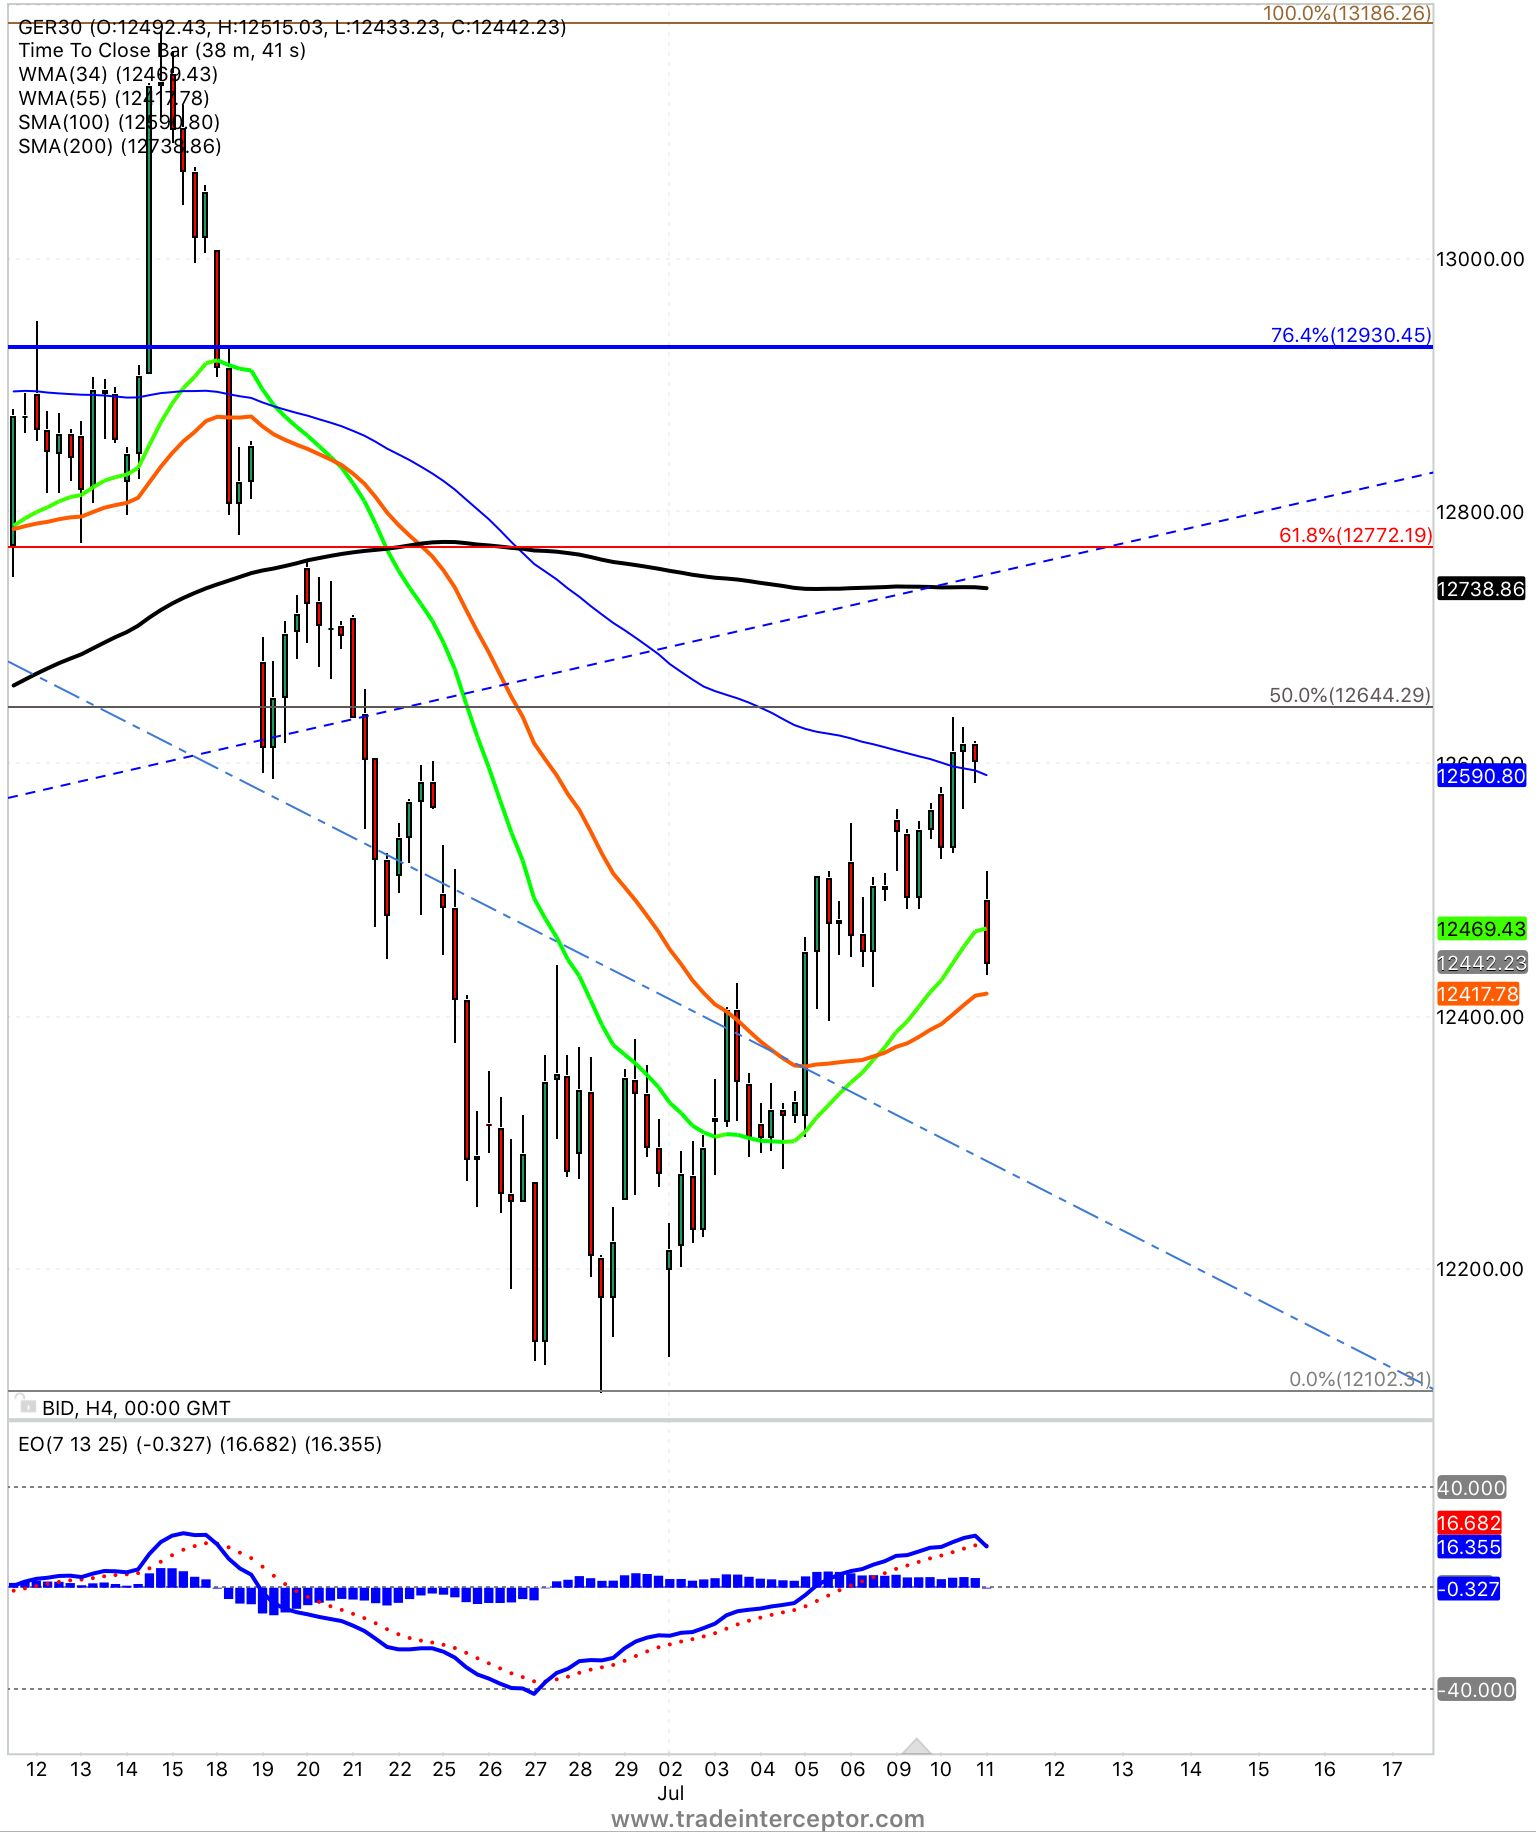 Dax Good Morning Europe Stocks Eur Intraday Trading Technical